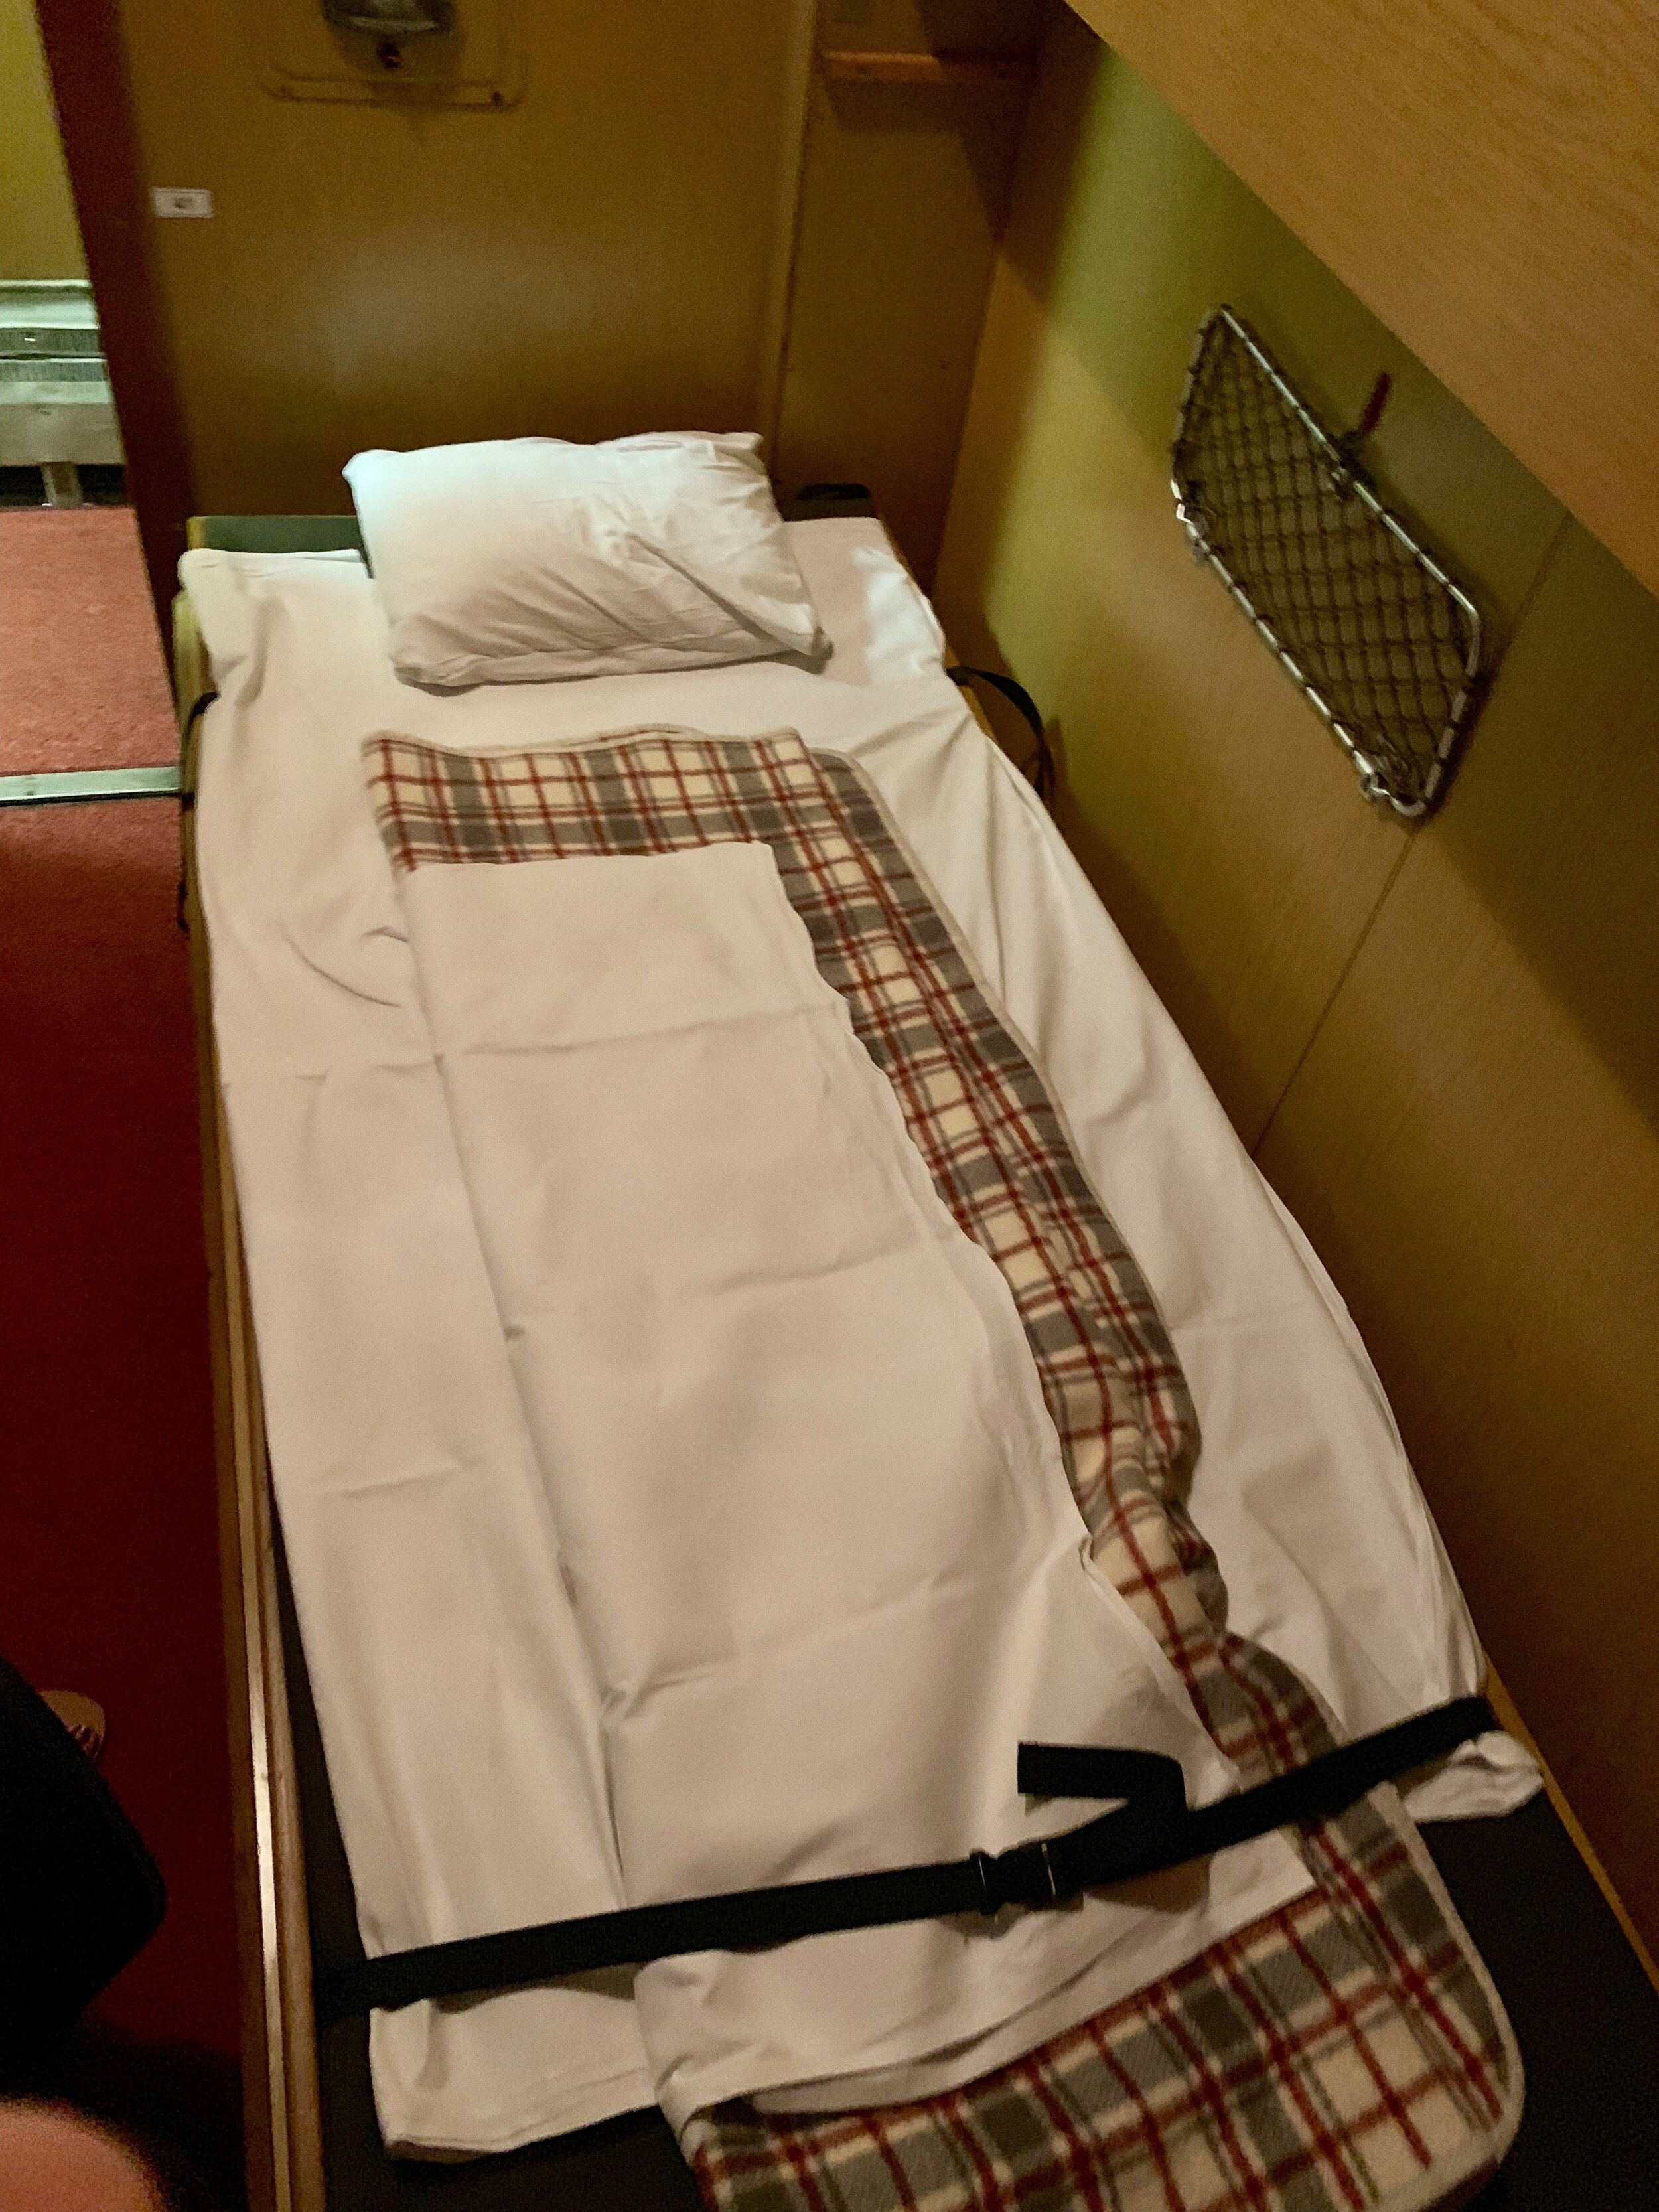 - Because there was a direct train to Micurea-Ciuc from Budapest, I ended up taking the overnight train there. Though I own private compartment (highly recommended, otherwise there are two more beds that can be converted above the one pictured here!), the ride was still a bumpy one and sleep escaped me for that night 😥